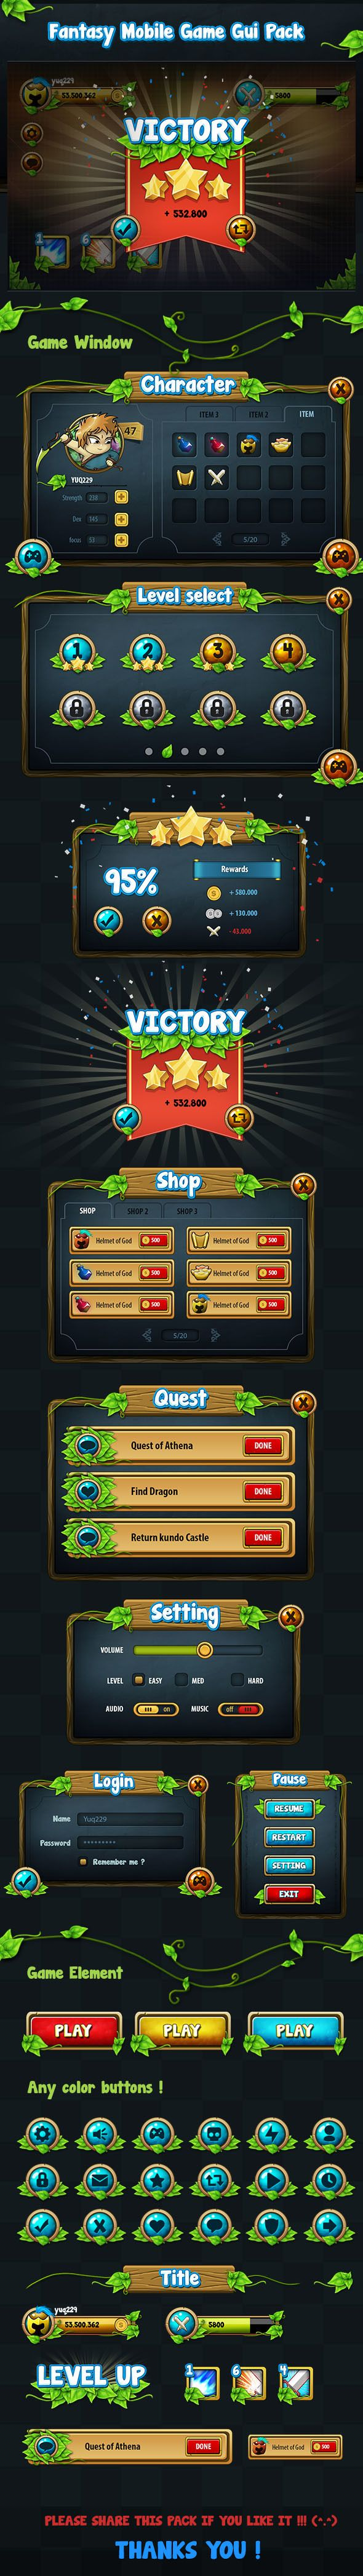 Fantasy Mobile Game Gui Pack 04 | Create your own roleplaying game books w/ RPG Bard: www.rpgbard.com | Pathfinder PFRPG Dungeons and Dragons ADND DND OGL d20 OSR OSRIC Warhammer 40000 40k Fantasy Roleplay WFRP Star Wars Exalted World of Darkness Dragon Age Iron Kingdoms Fate Core System Savage Worlds Shadowrun Dungeon Crawl Classics DCC Call of Cthulhu CoC Basic Role Playing BRP Traveller Battletech The One Ring TOR fantasy science fiction horror